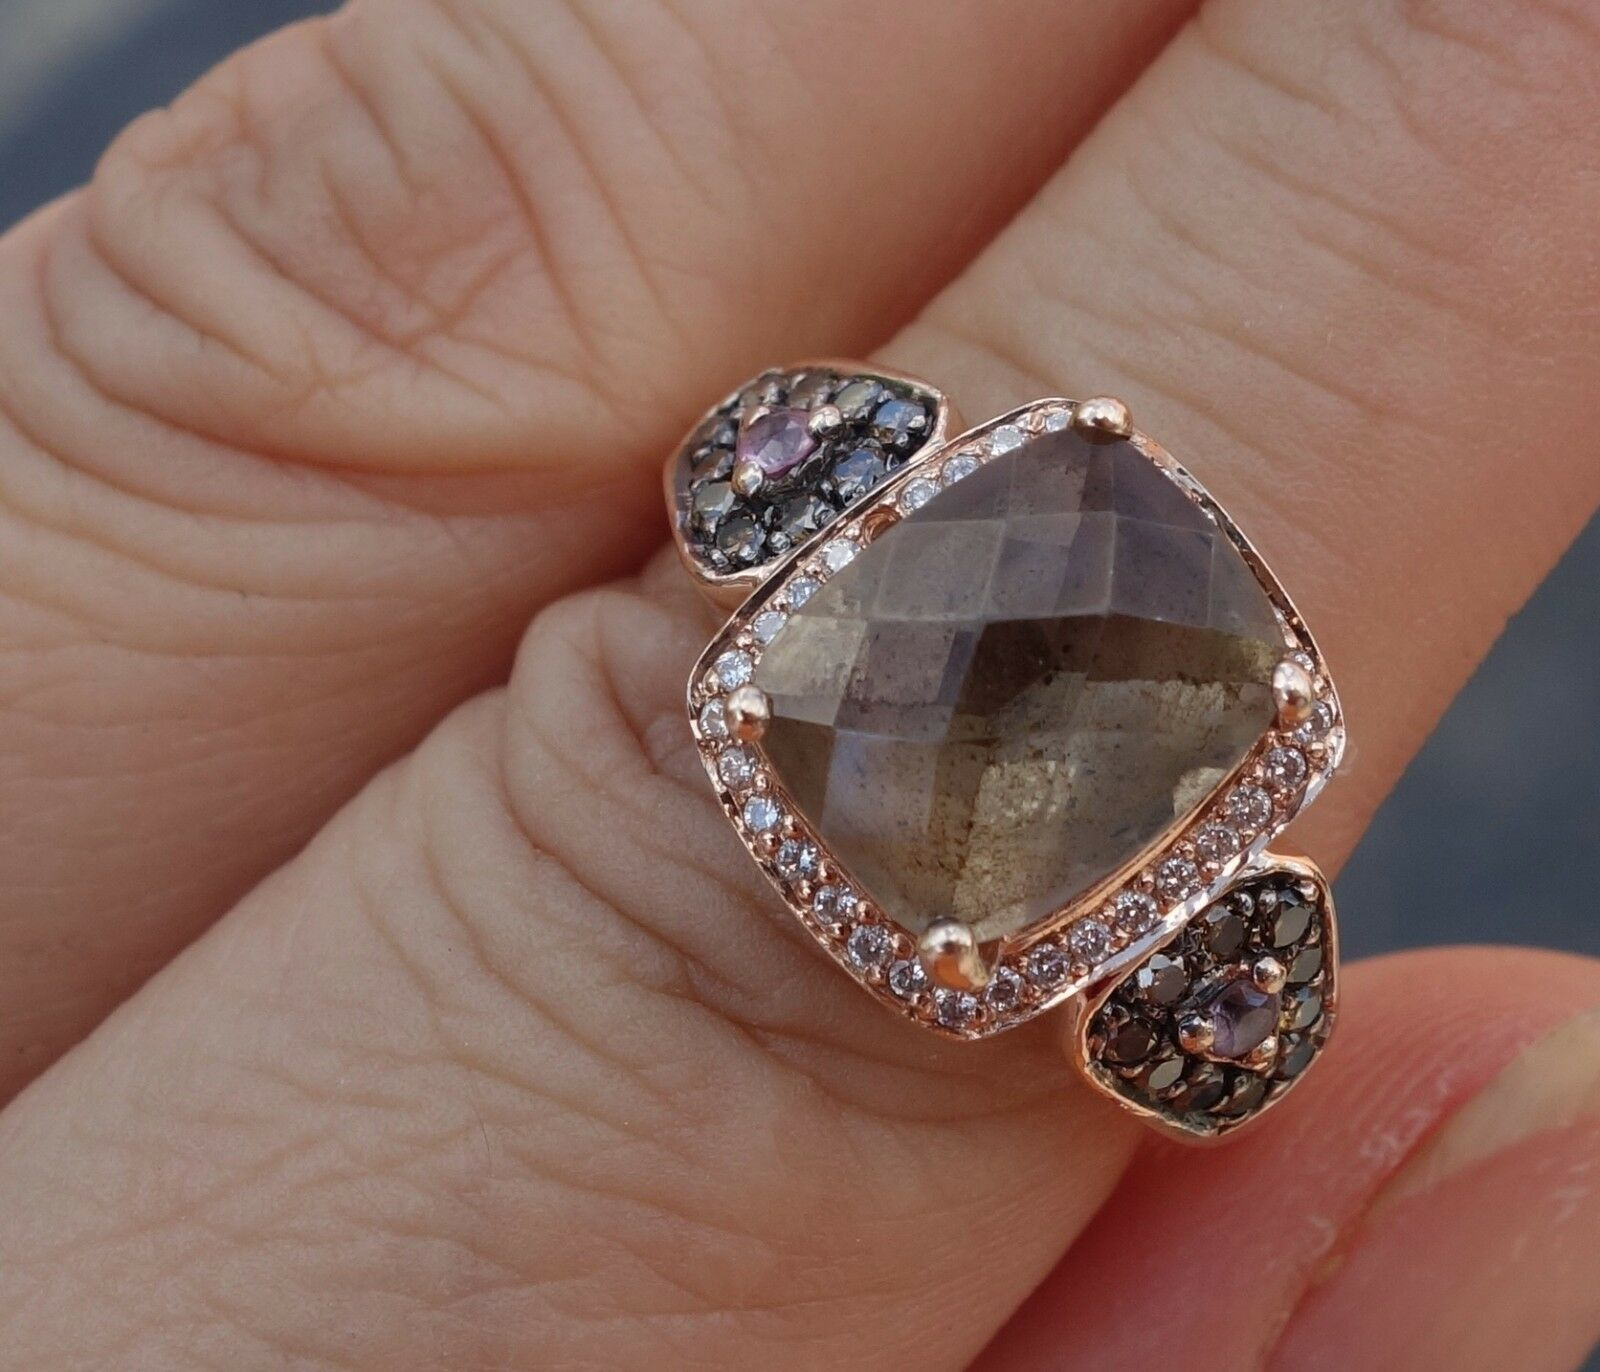 Le Vian Diamond Smoke Topaz Chocolate pink gold ring Missing a small stone